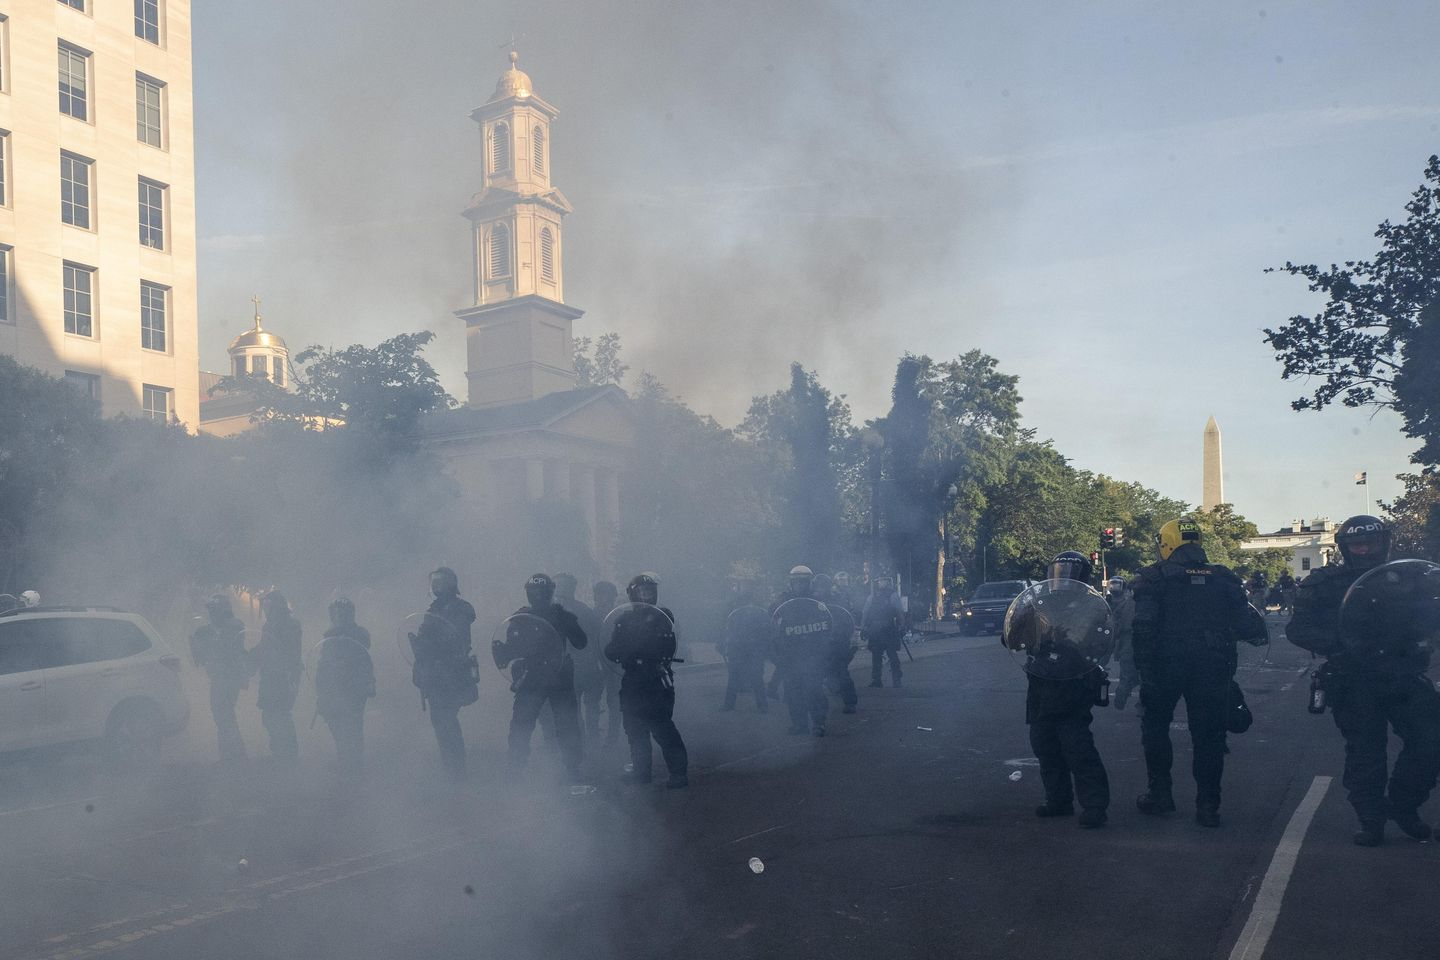 National Guard major says excessive force, tear gas used in June 1 protest near White House